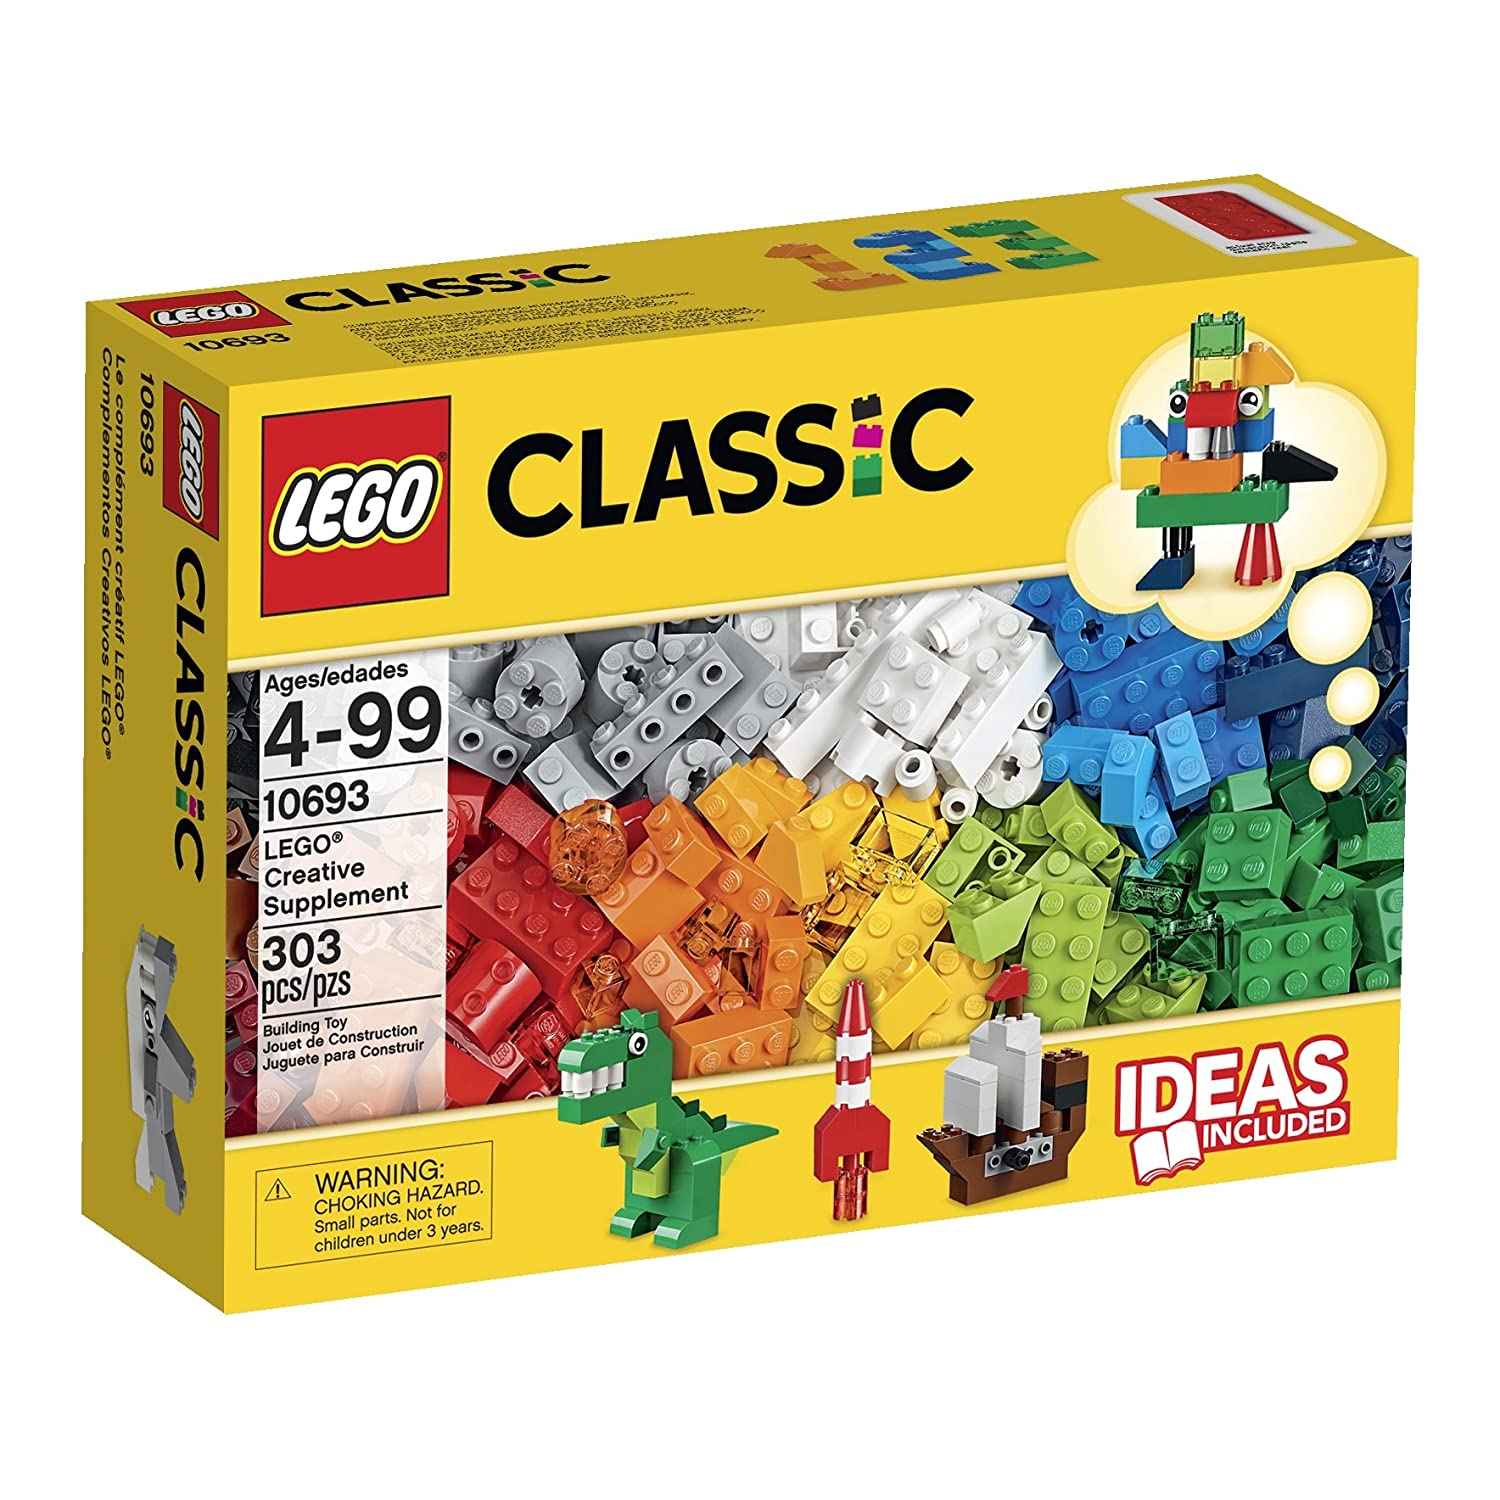 $15.3 LEGO® Classic Creative Supplement 10693 Learning Toy 303 Pcs